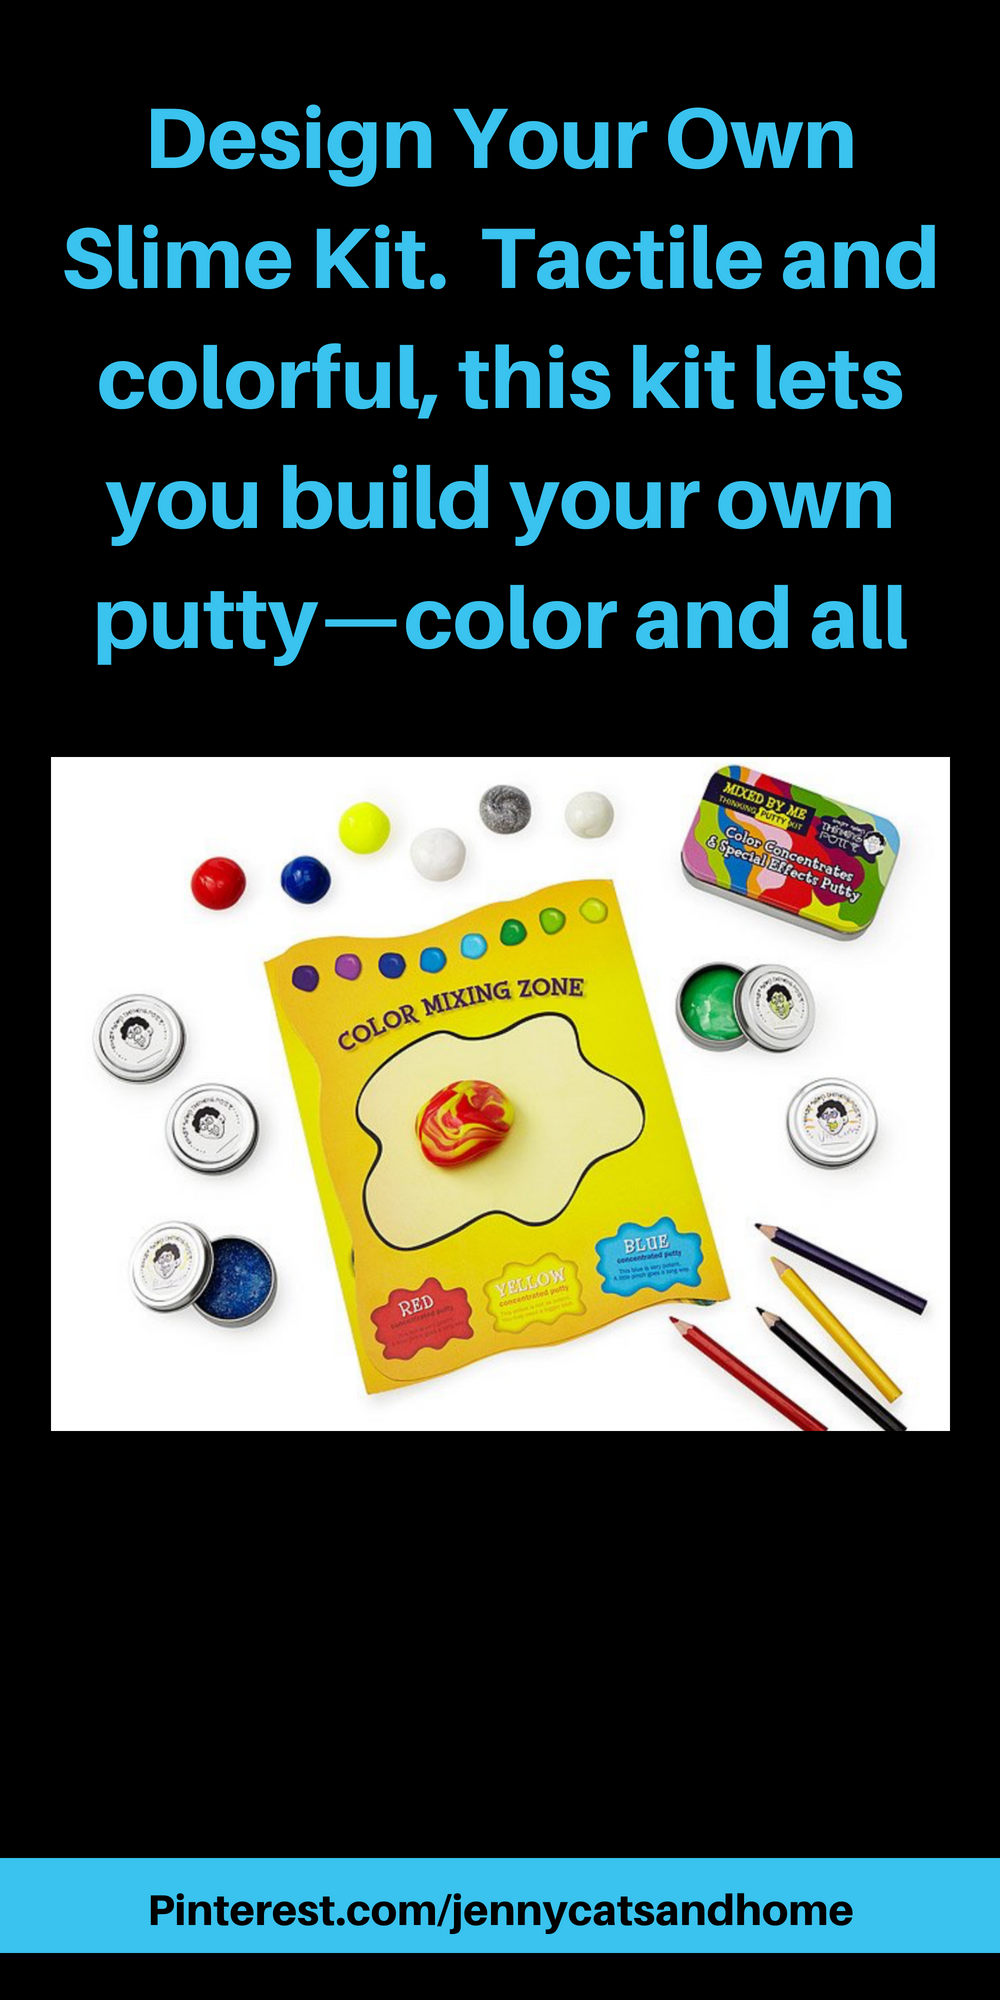 Design Your Own Slime Kit Tactile And Colorful This Kit Lets You